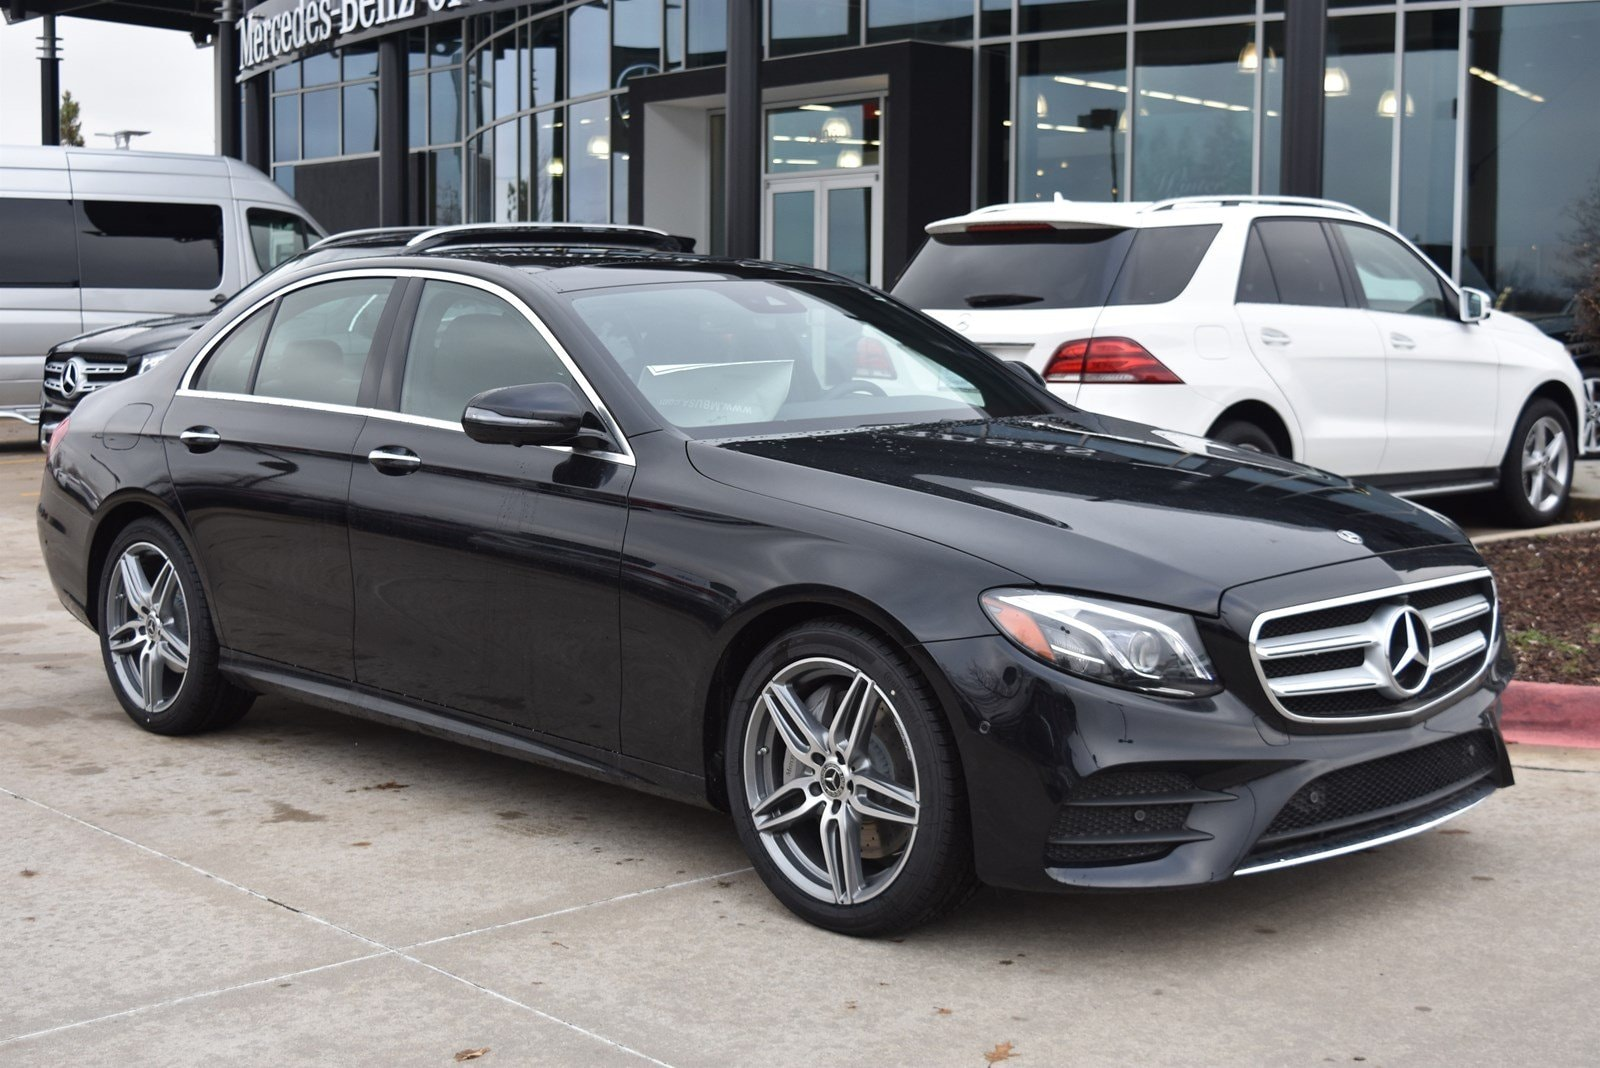 2019 Mercedes-Benz E-Class Sedan